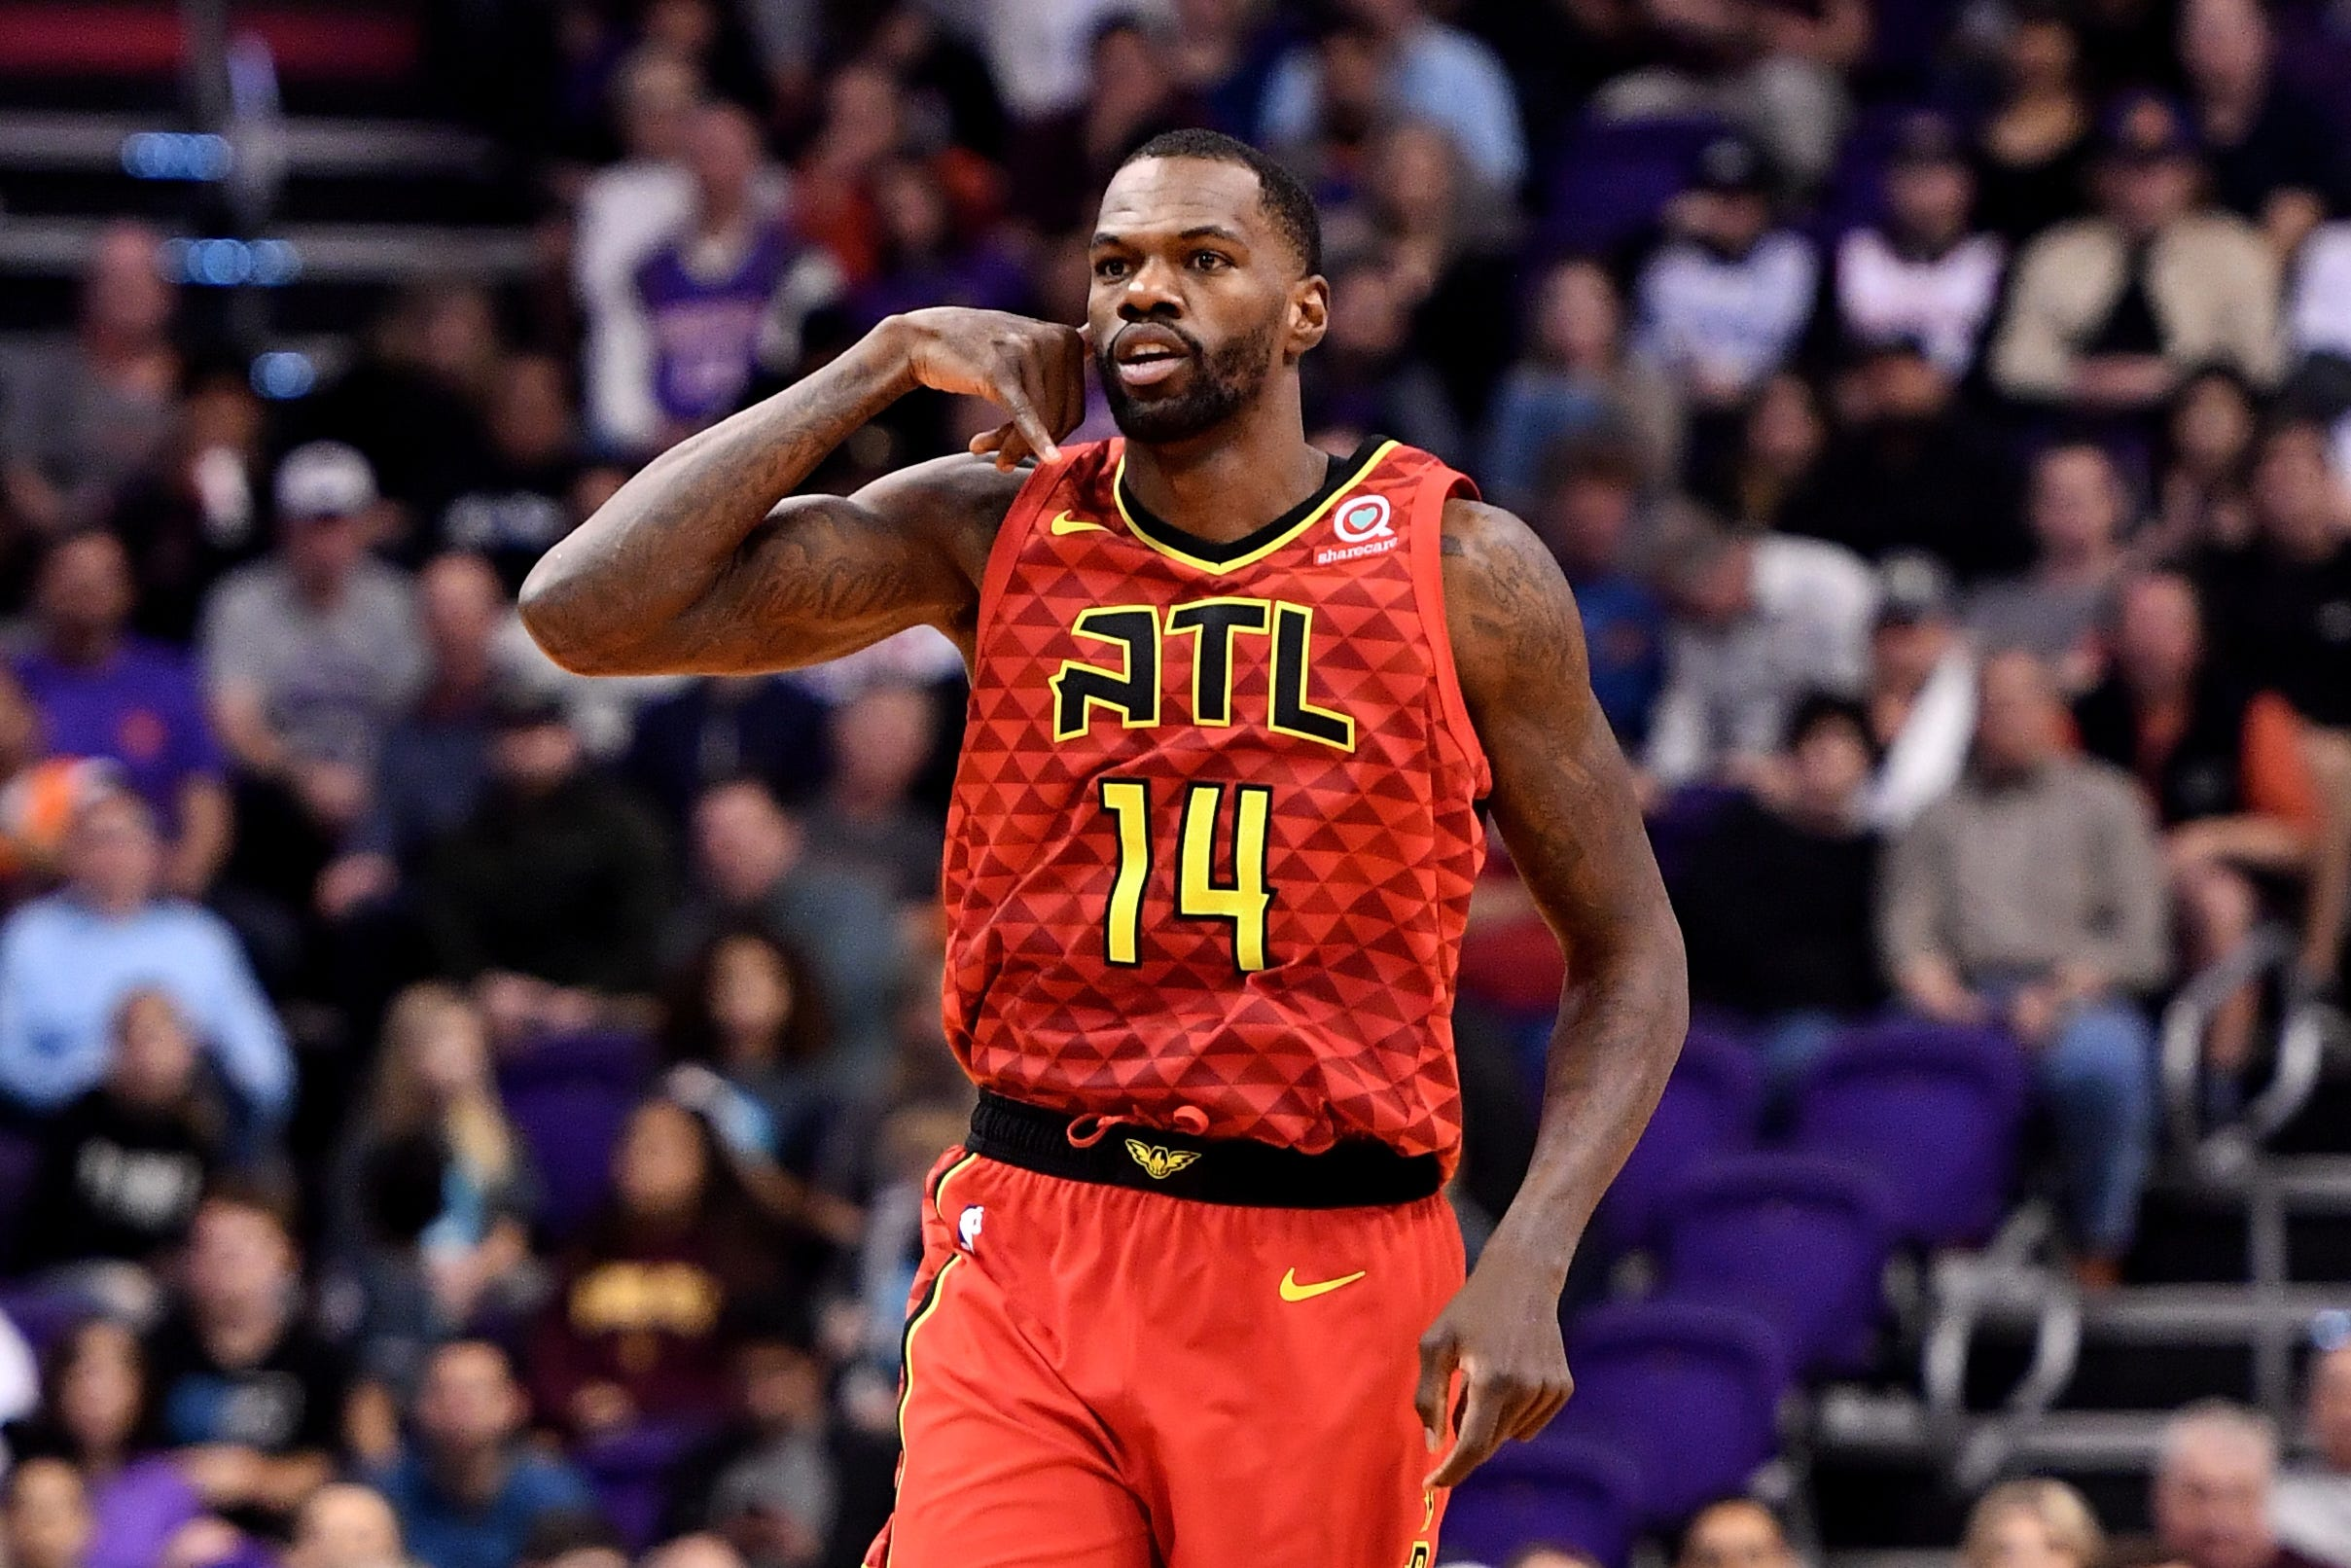 Detroit Pistons trade Tony Snell, Thomas for Hawks' Dewayne Dedmon